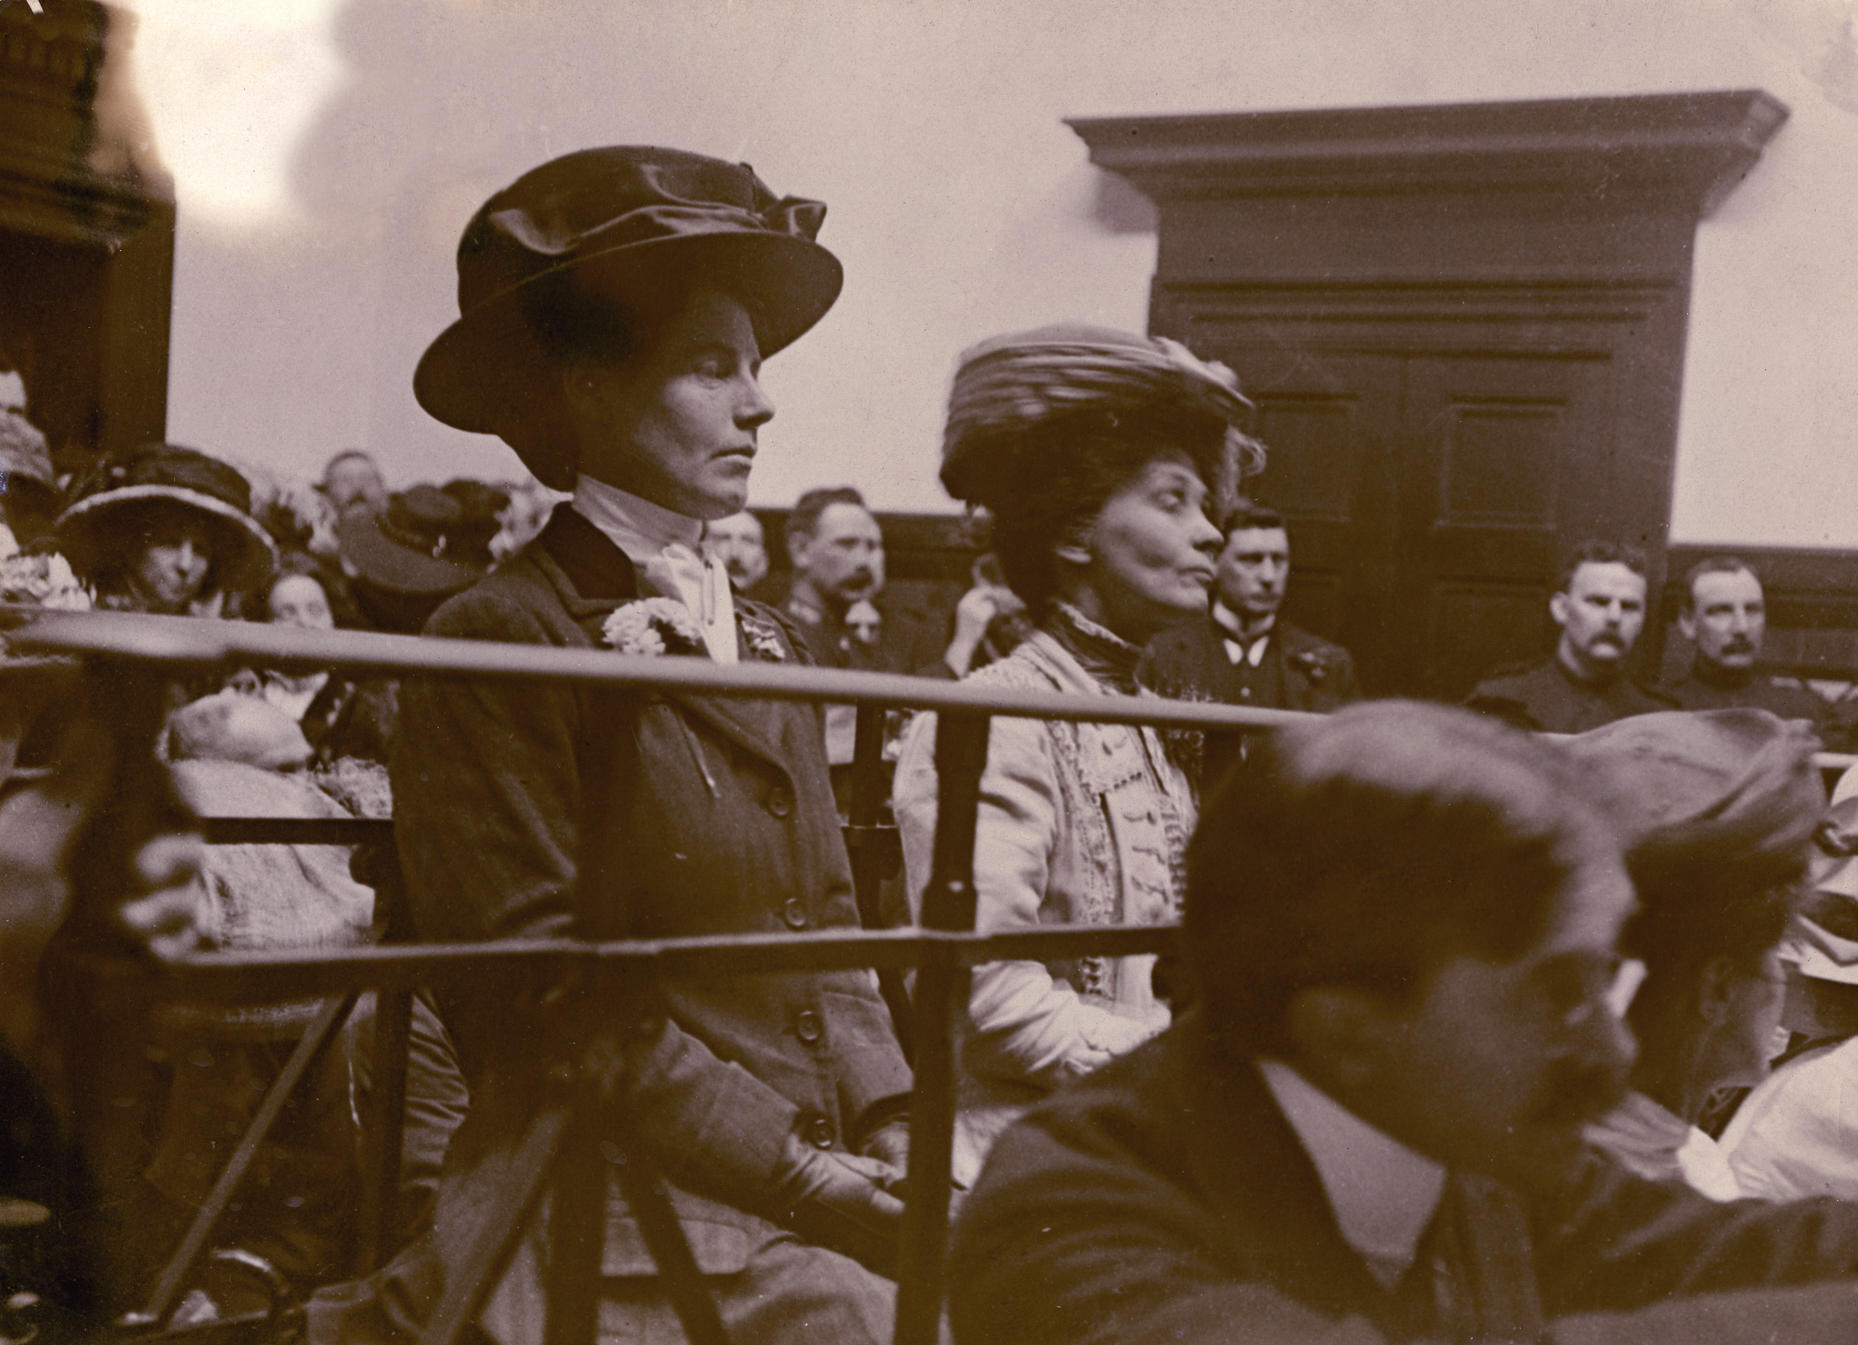 Evelina Haverfield and Emmeline Pankhurst